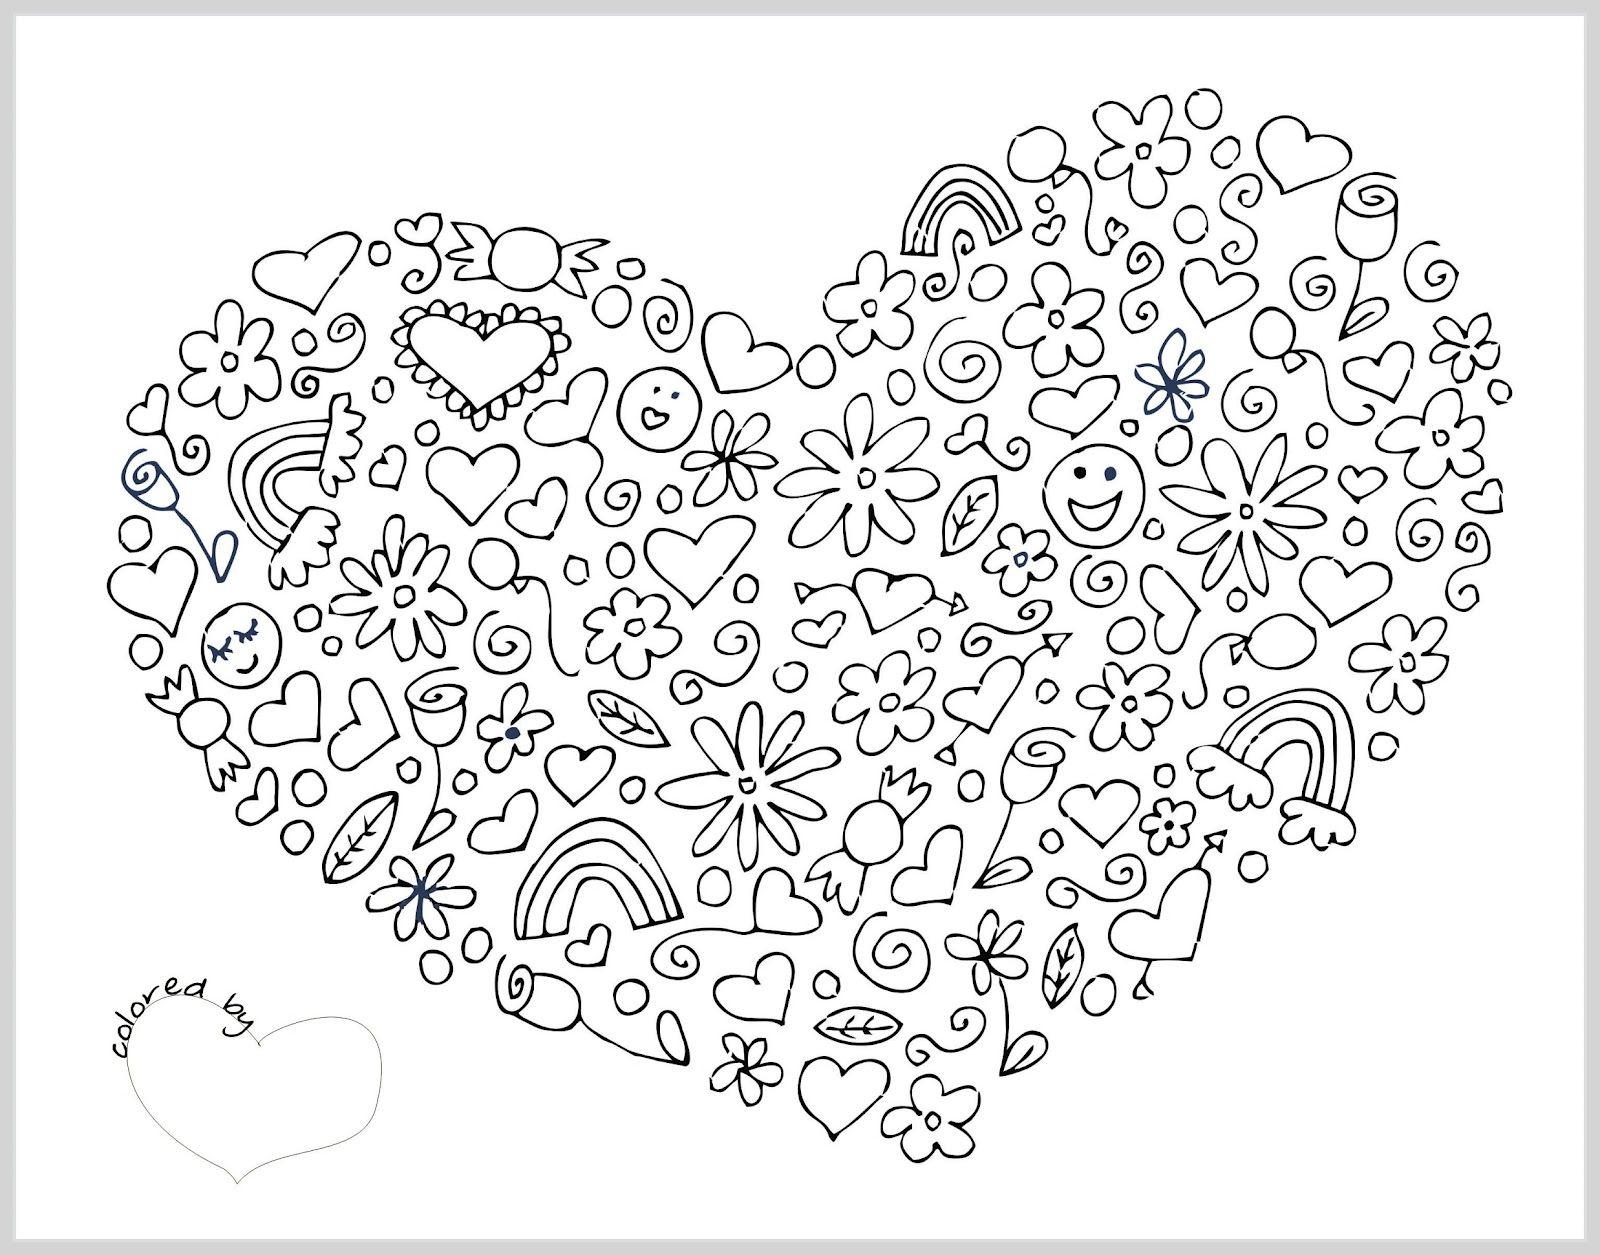 Online coloring for adults free - Free Coloring Pages For Adults Printable Hard To Color Coloring